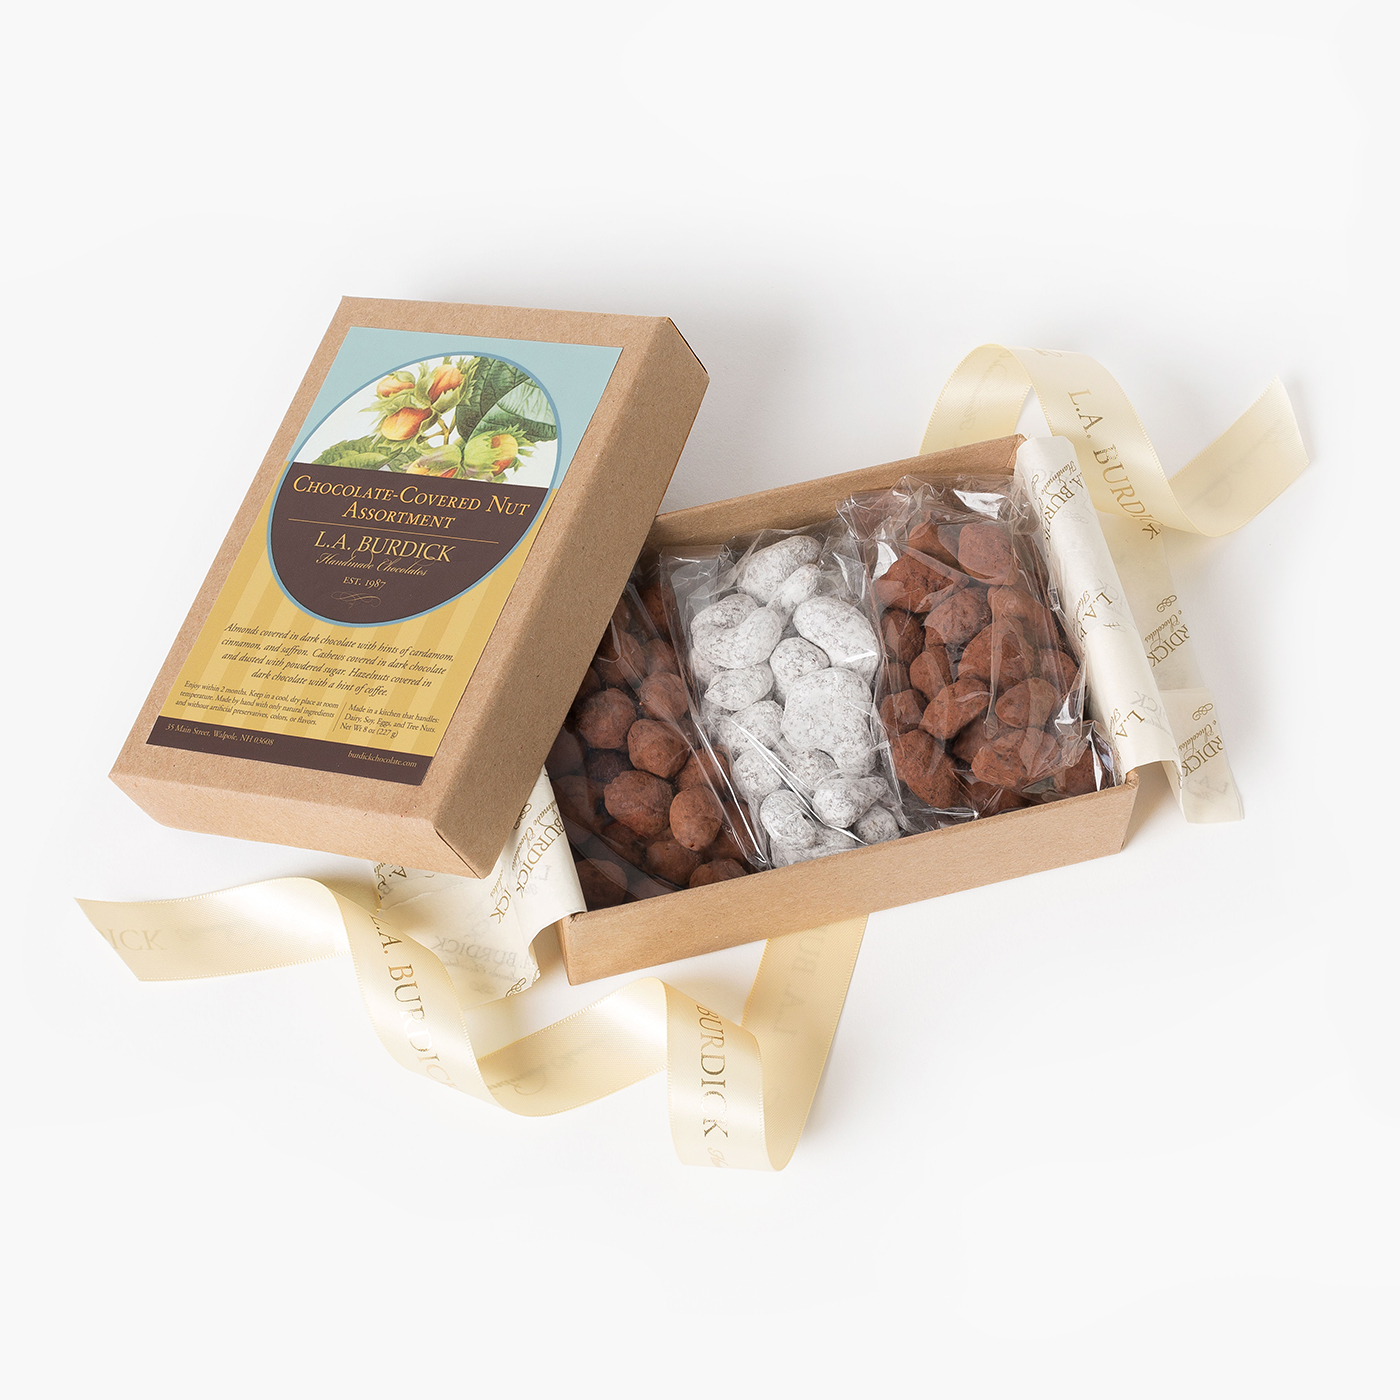 Chocolate-Covered Nut Assortment